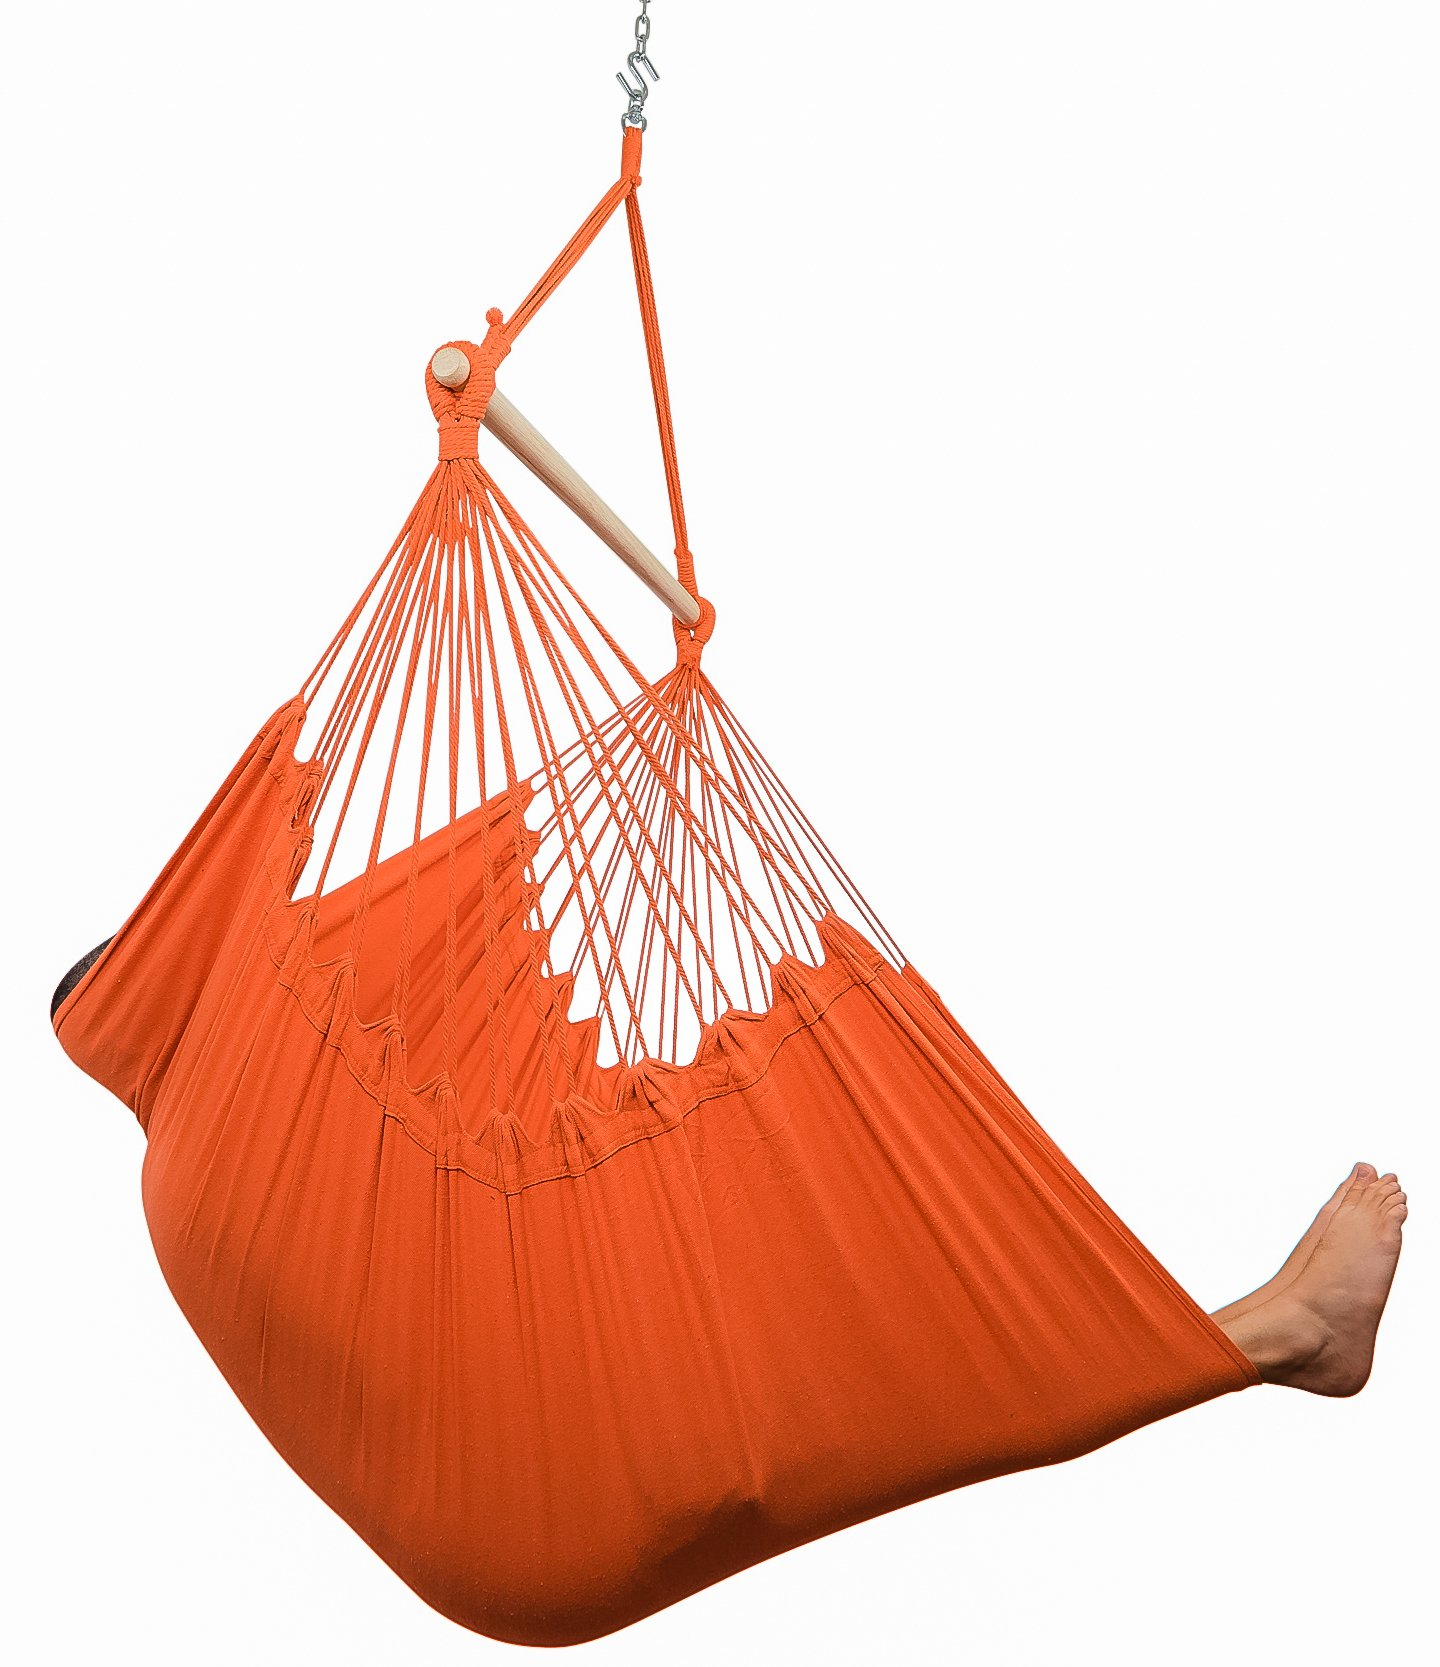 Hammock Sky XXL Hammock Chair Swing by For Patio, Porch, Bedroom, Backyard, Indoor or Outdoor - Includes Hanging Hardware and Drink Holder (Peach Echo)